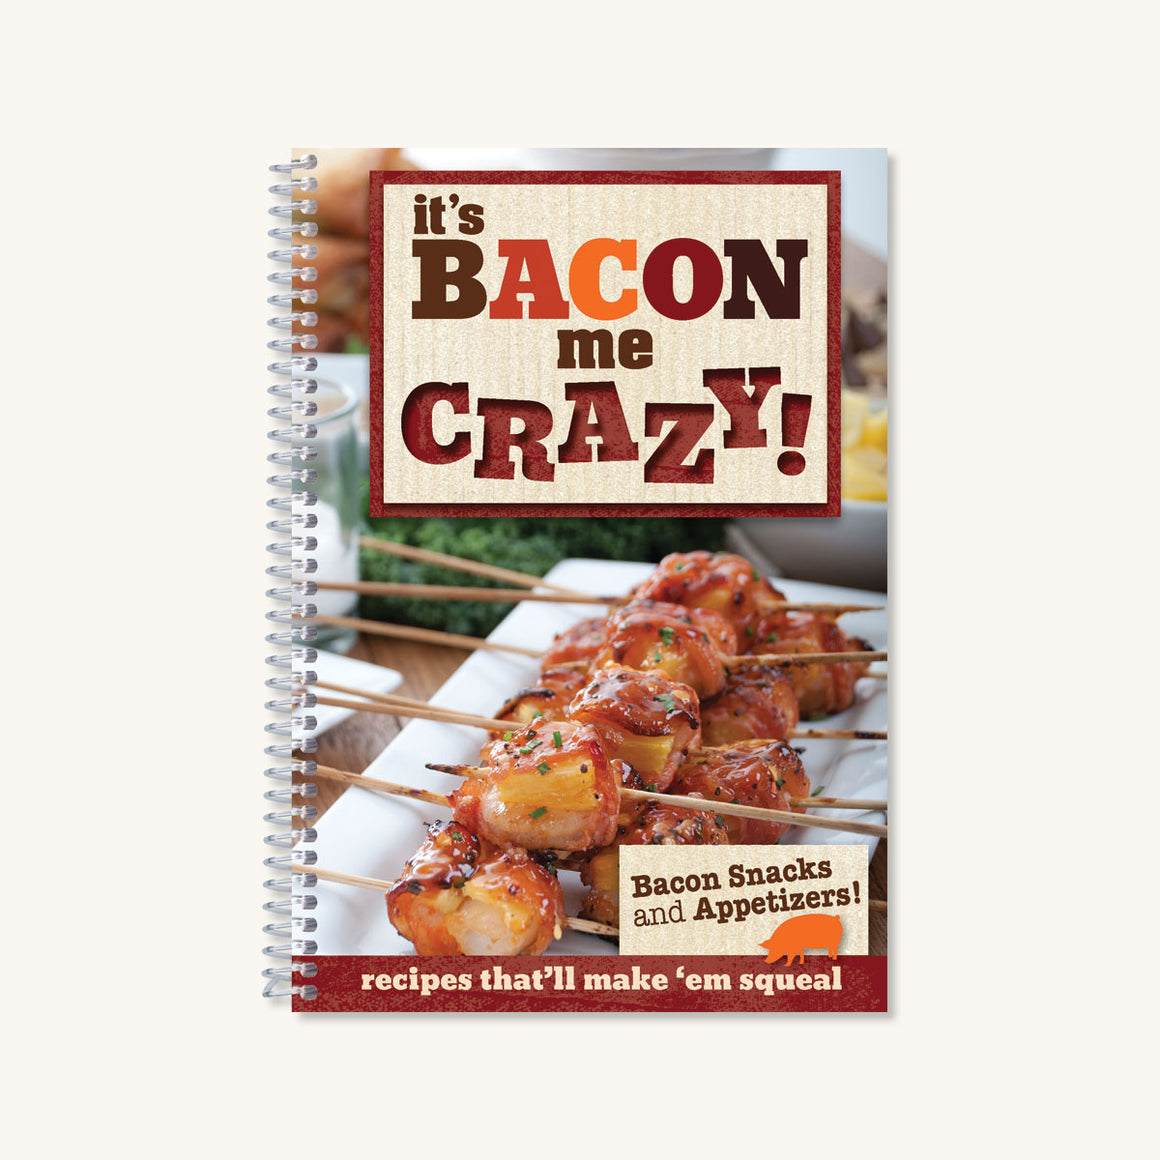 It's Bacon Me Crazy!